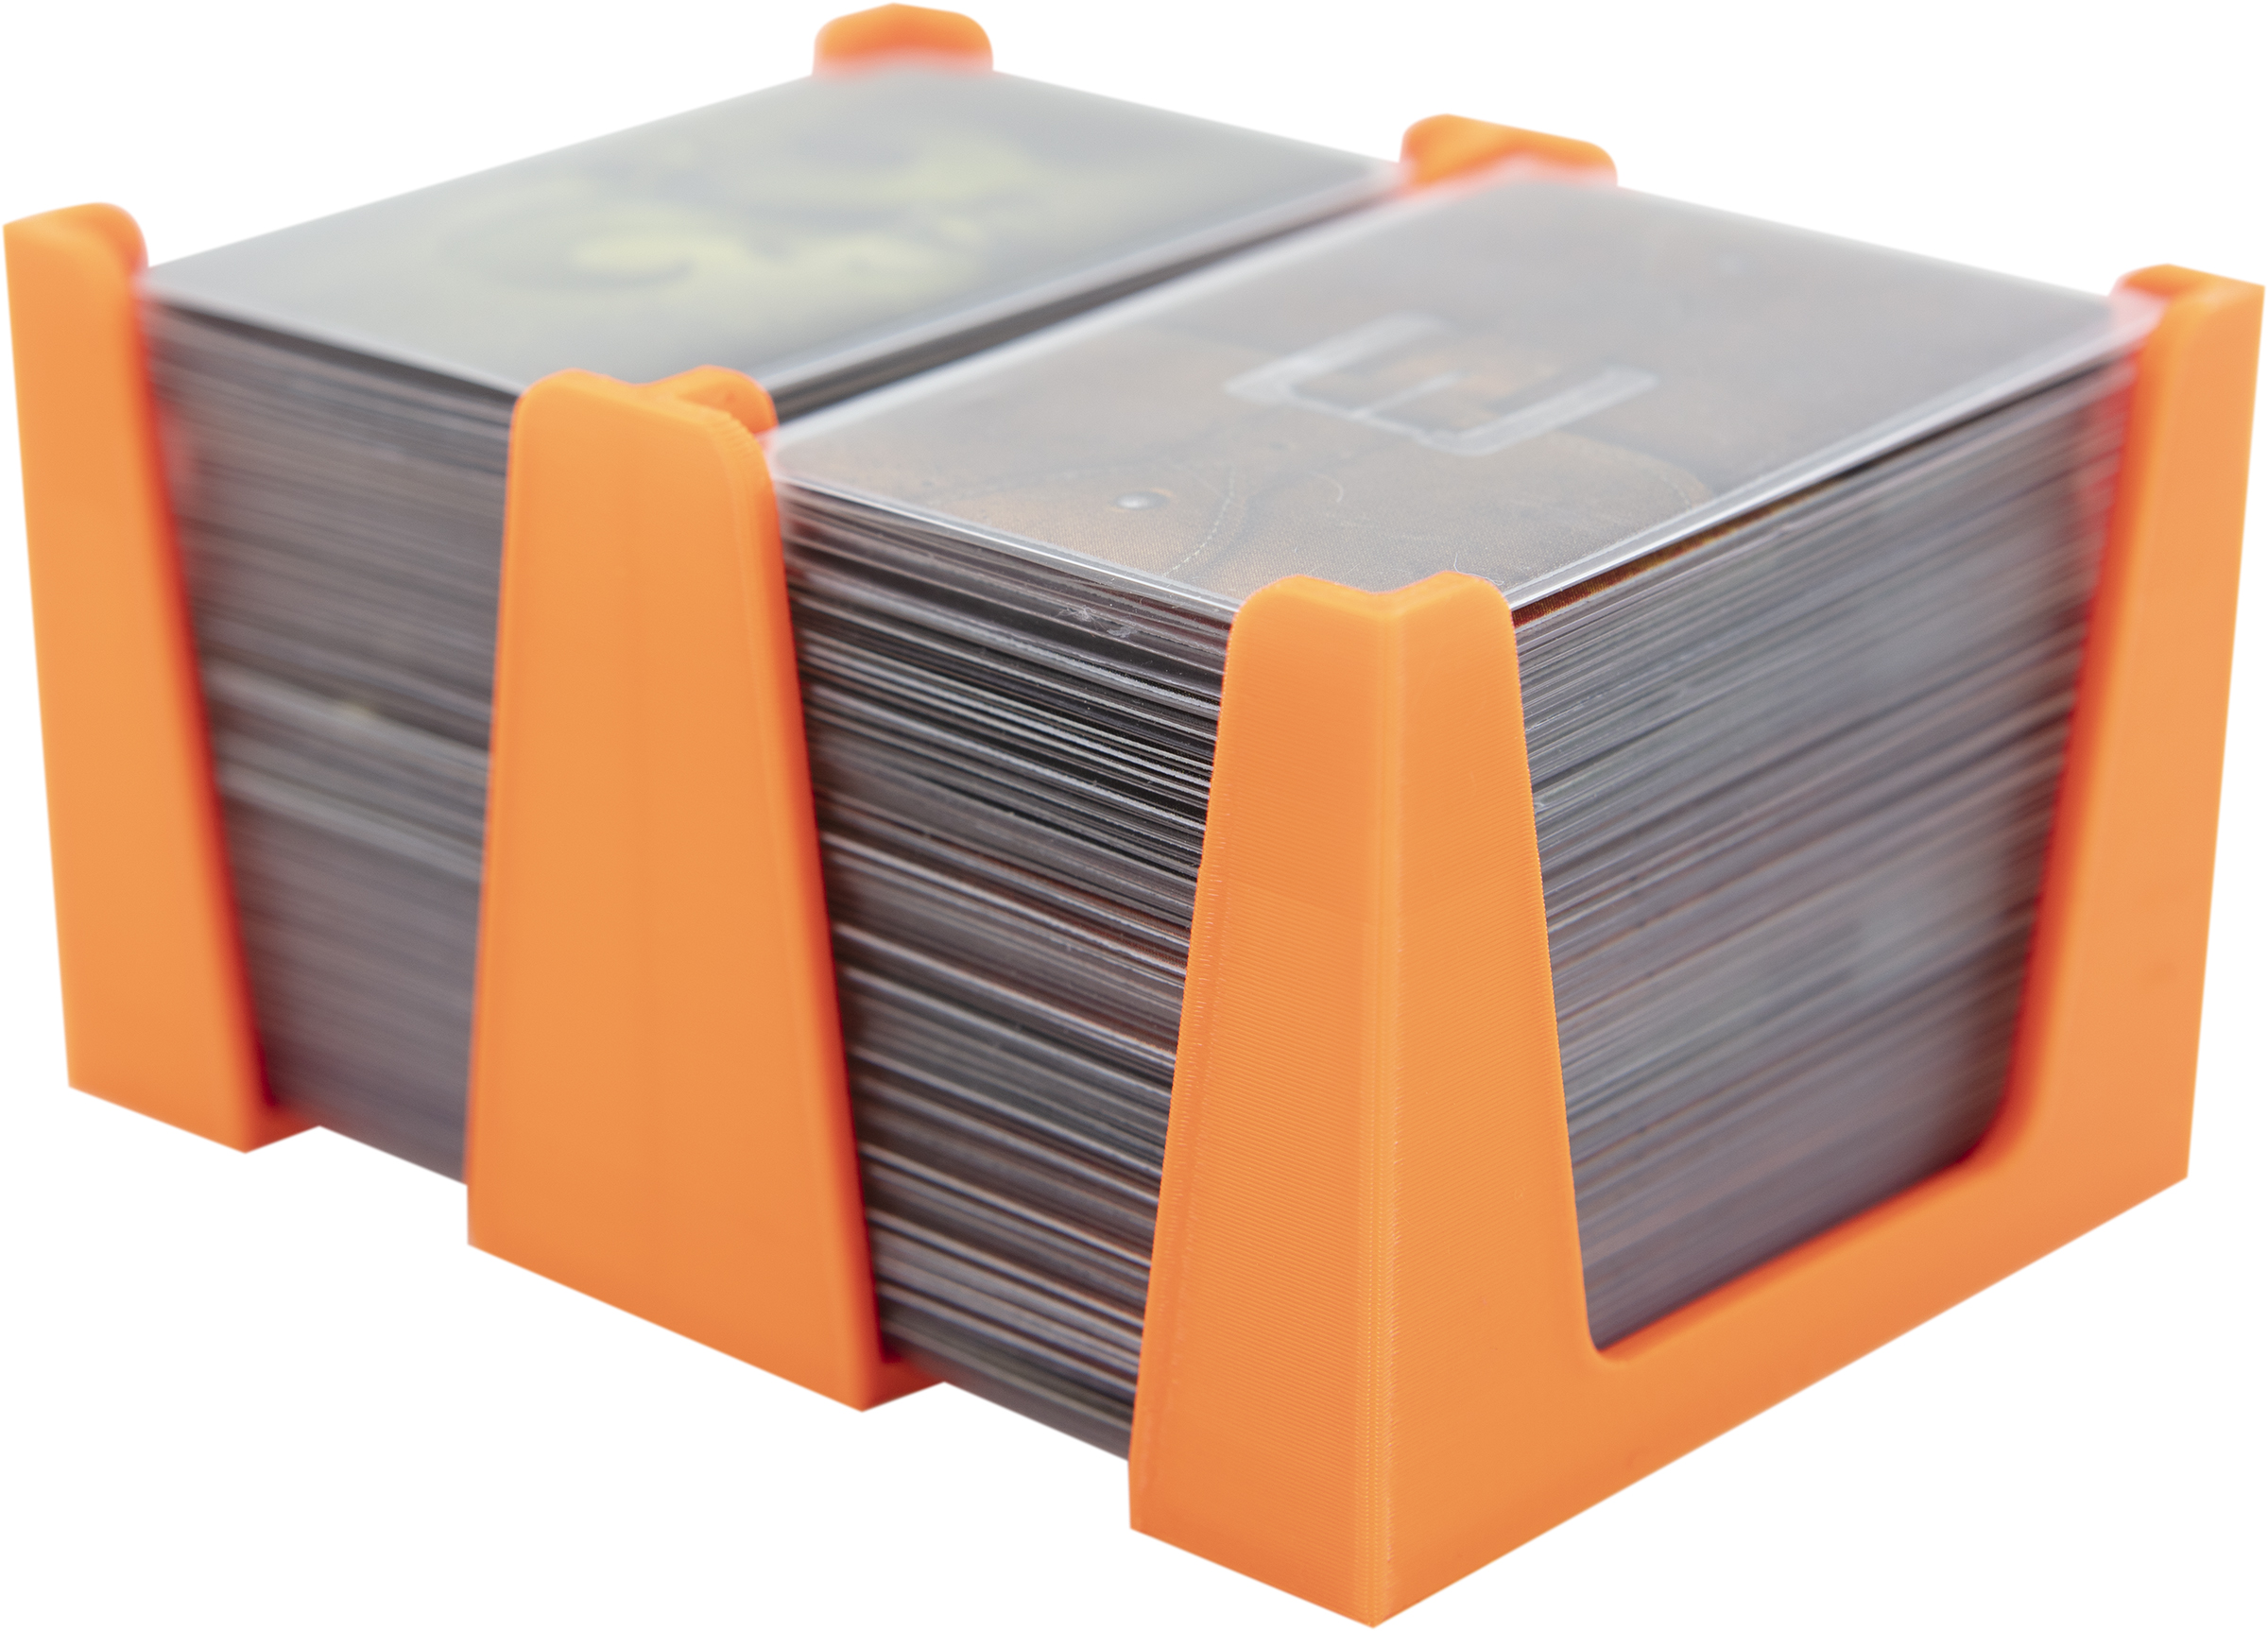 Feldherr Card Holder for game cards in Mini American Board Game Size - 300 cards - 2 trays